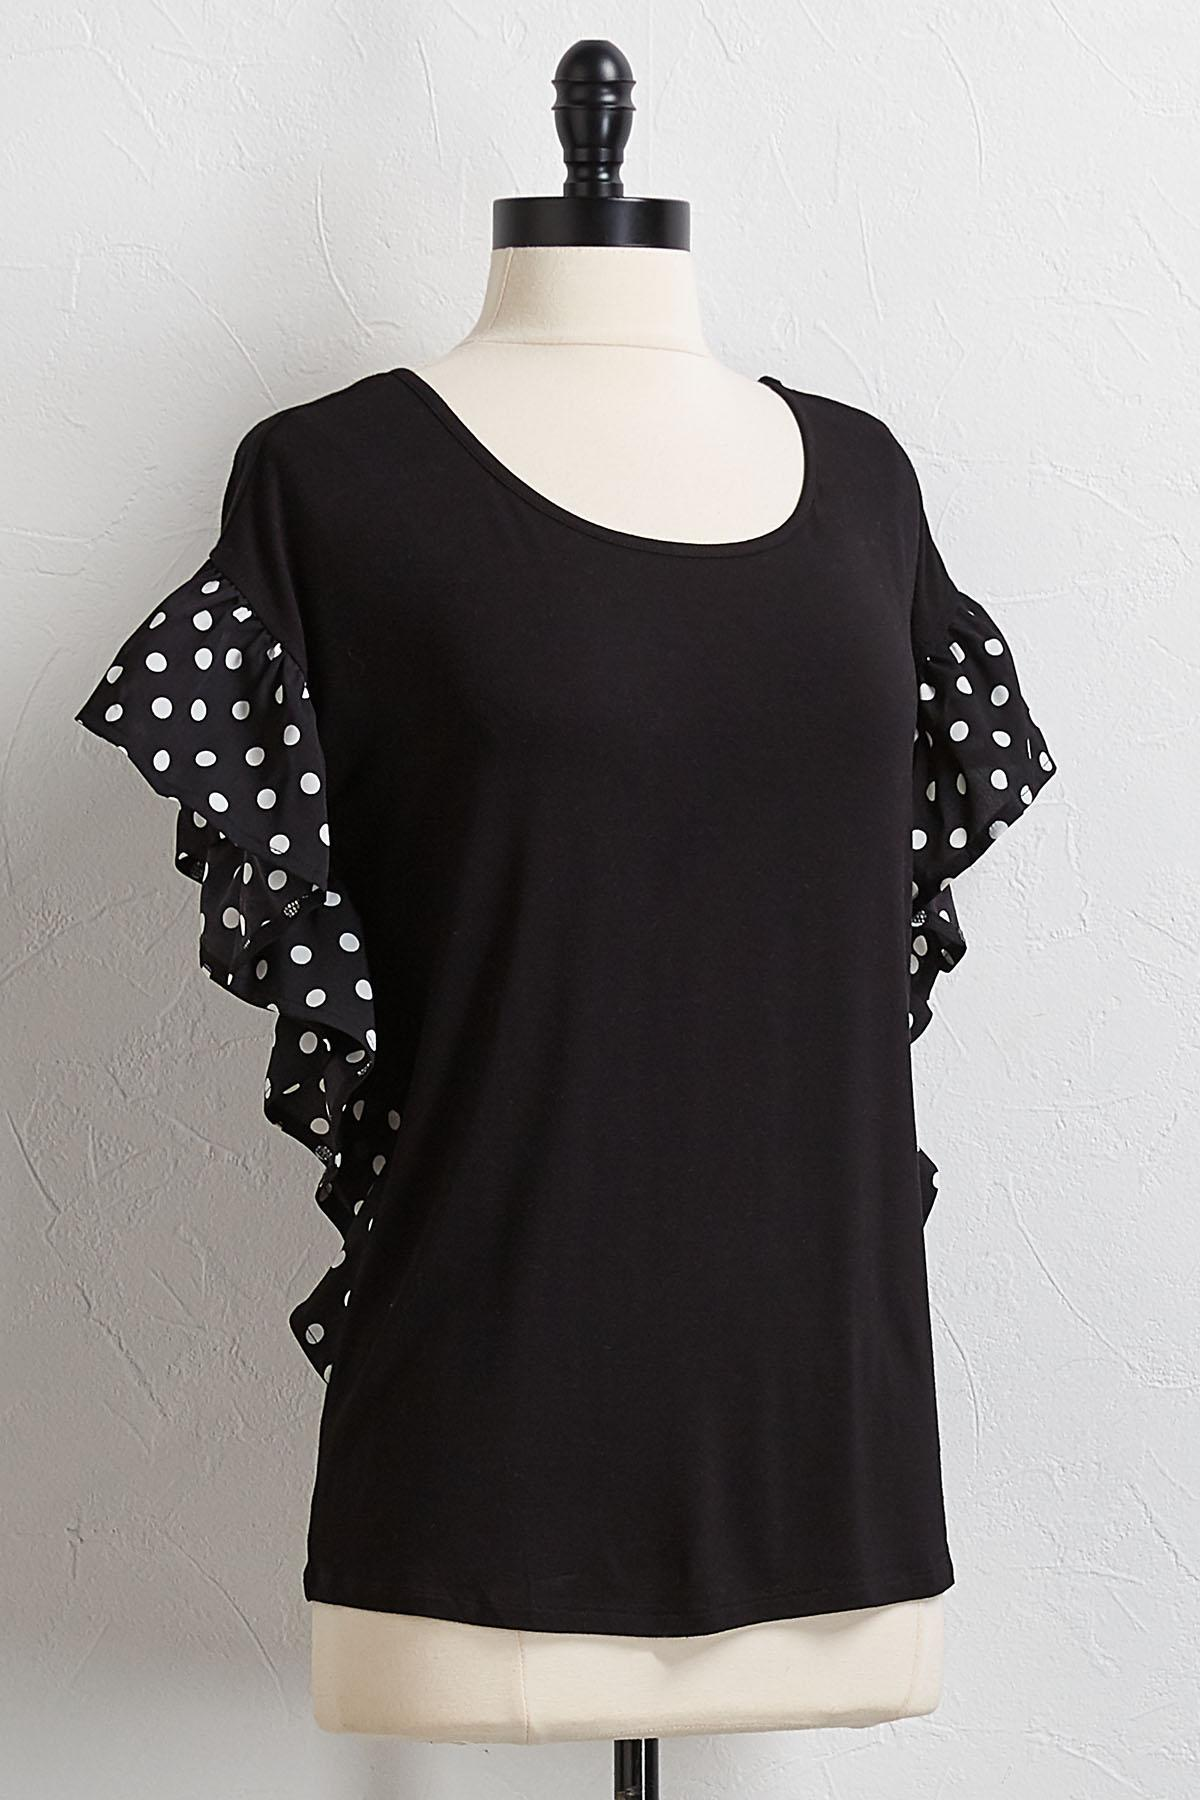 Contrast Polka Dotted Sleeve Top